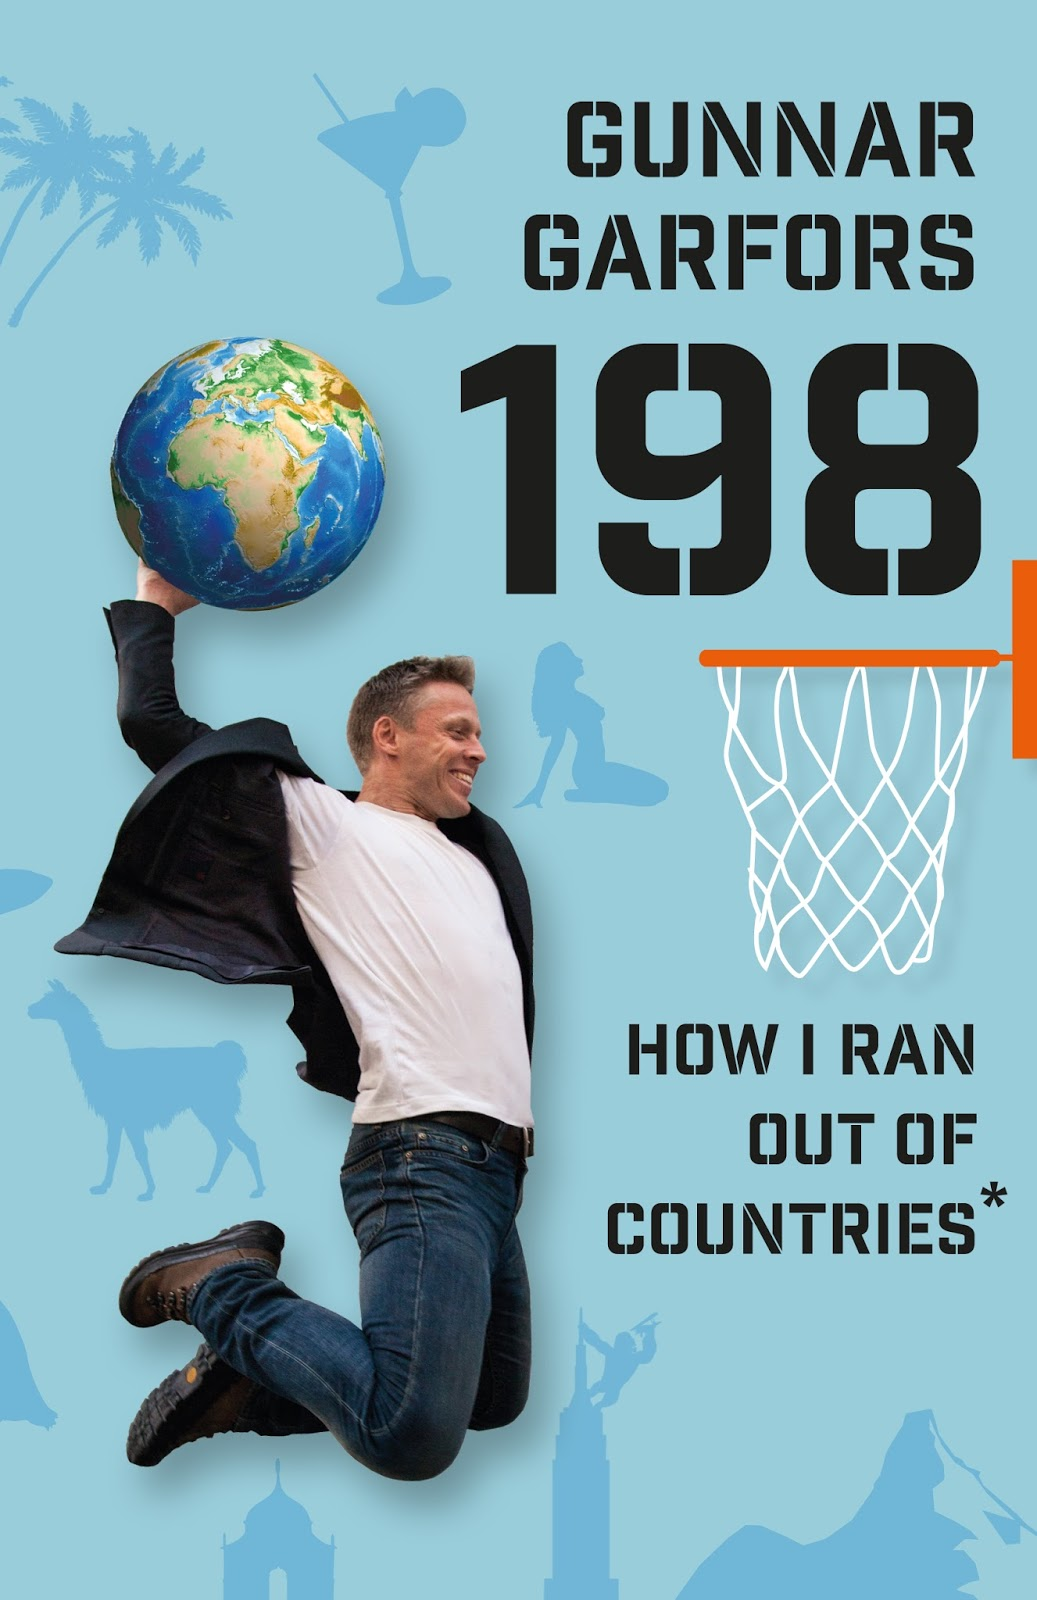 The cover of 198: How I Ran Out of Countries*. Image credit:    Gunnar Garfors   /Fair use